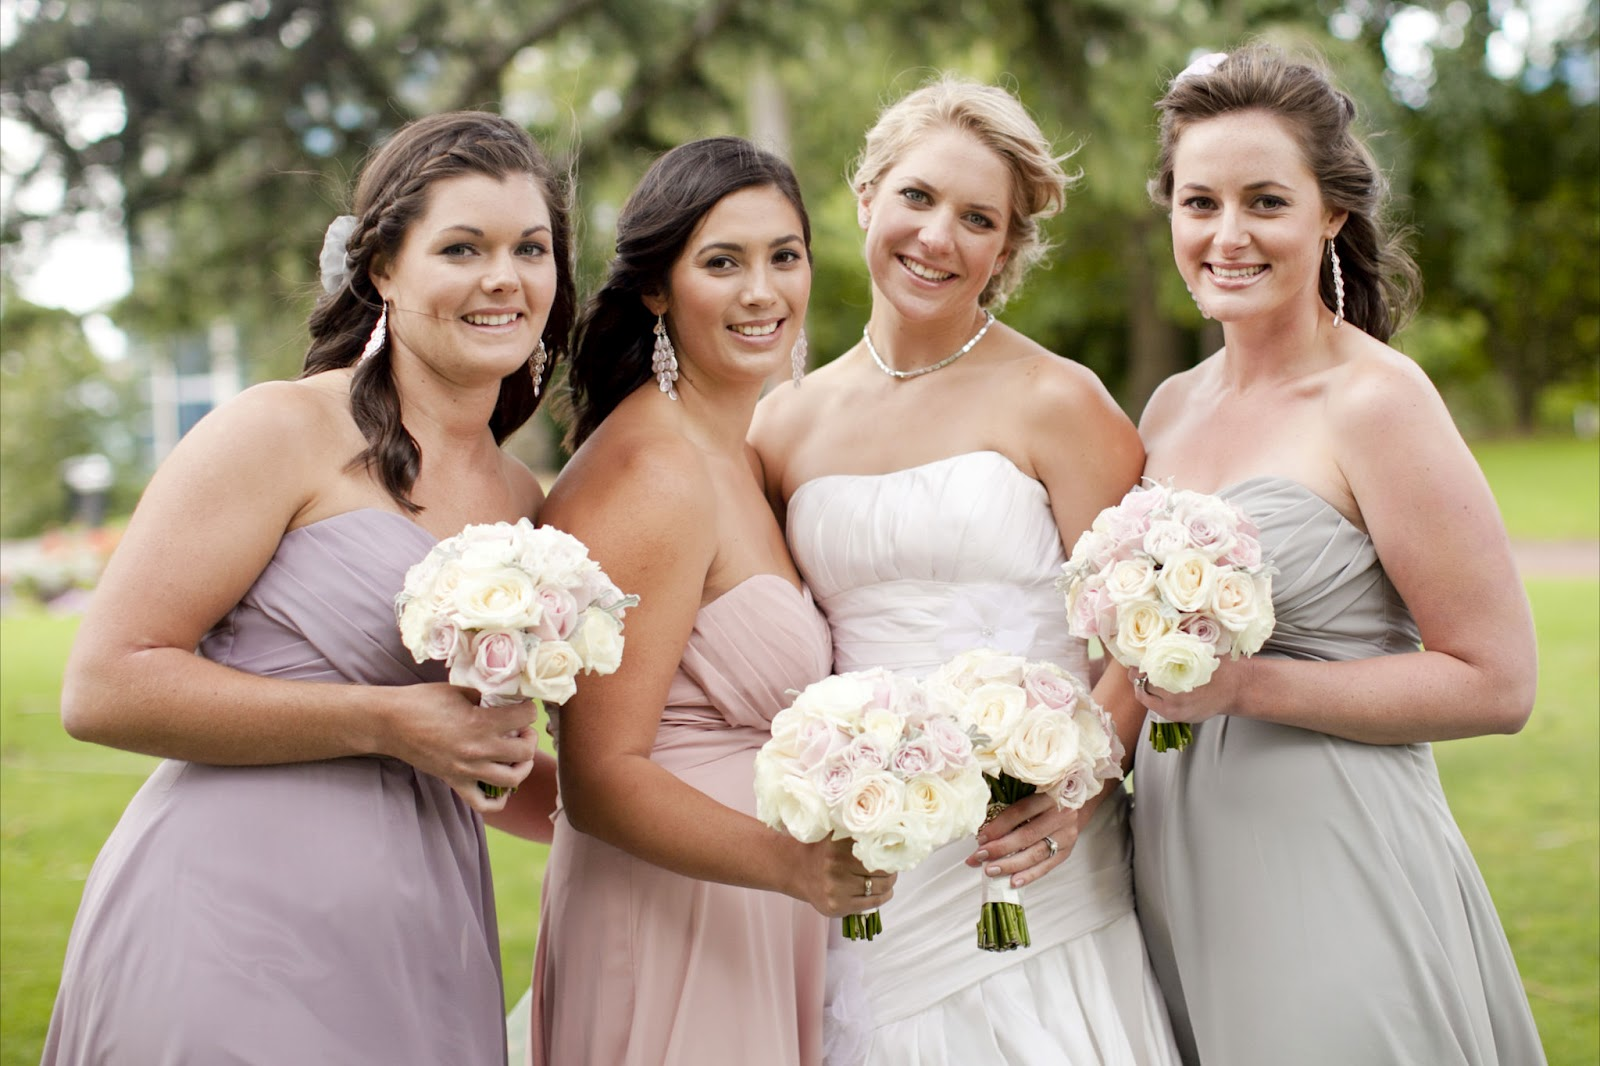 Anna dilworth wedding